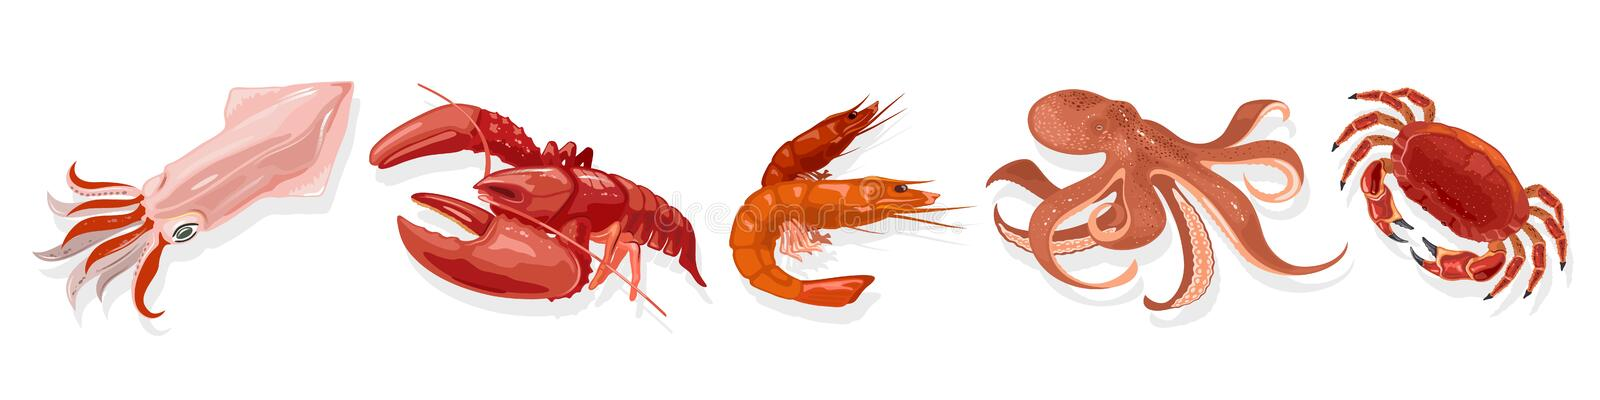 Vector set with cooked marine animals, products squid, lobster, shrimp, octopus, crab. royalty free illustration